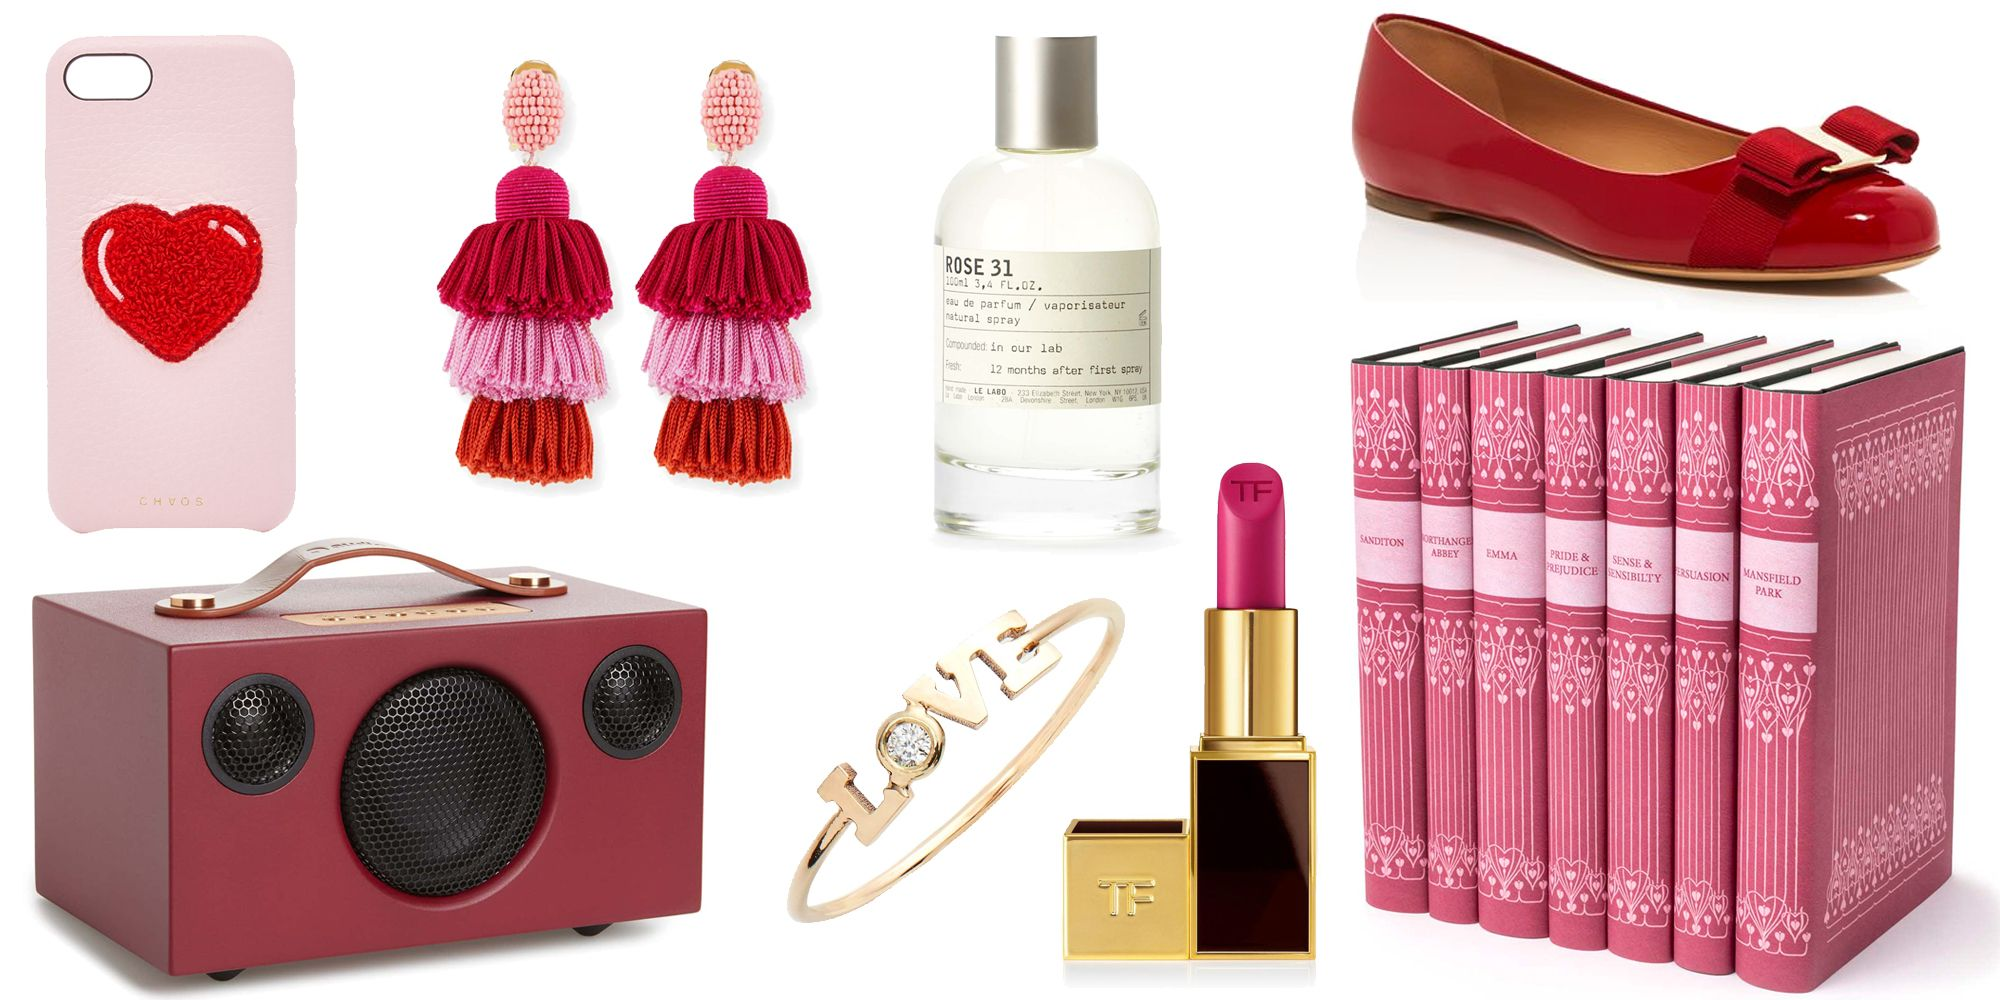 30 Best Valentine S Day Gifts For Her 2019 Romantic Gifts She Ll Love